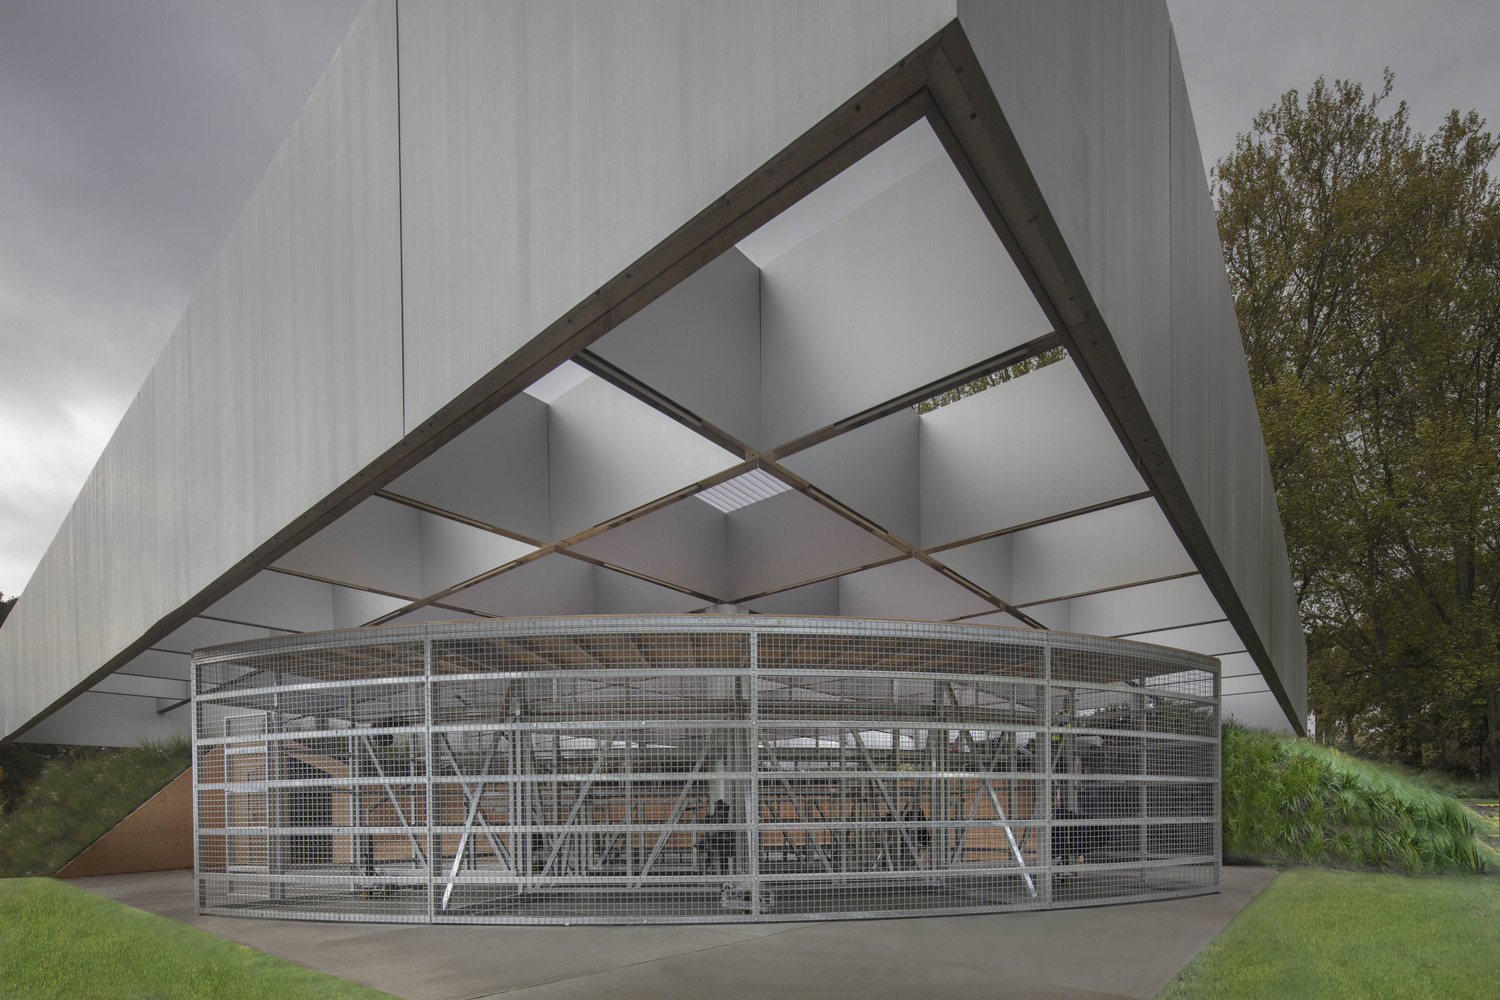 4_MPavilion_Rem Koolhaas & David Gianotten_Inspirationist